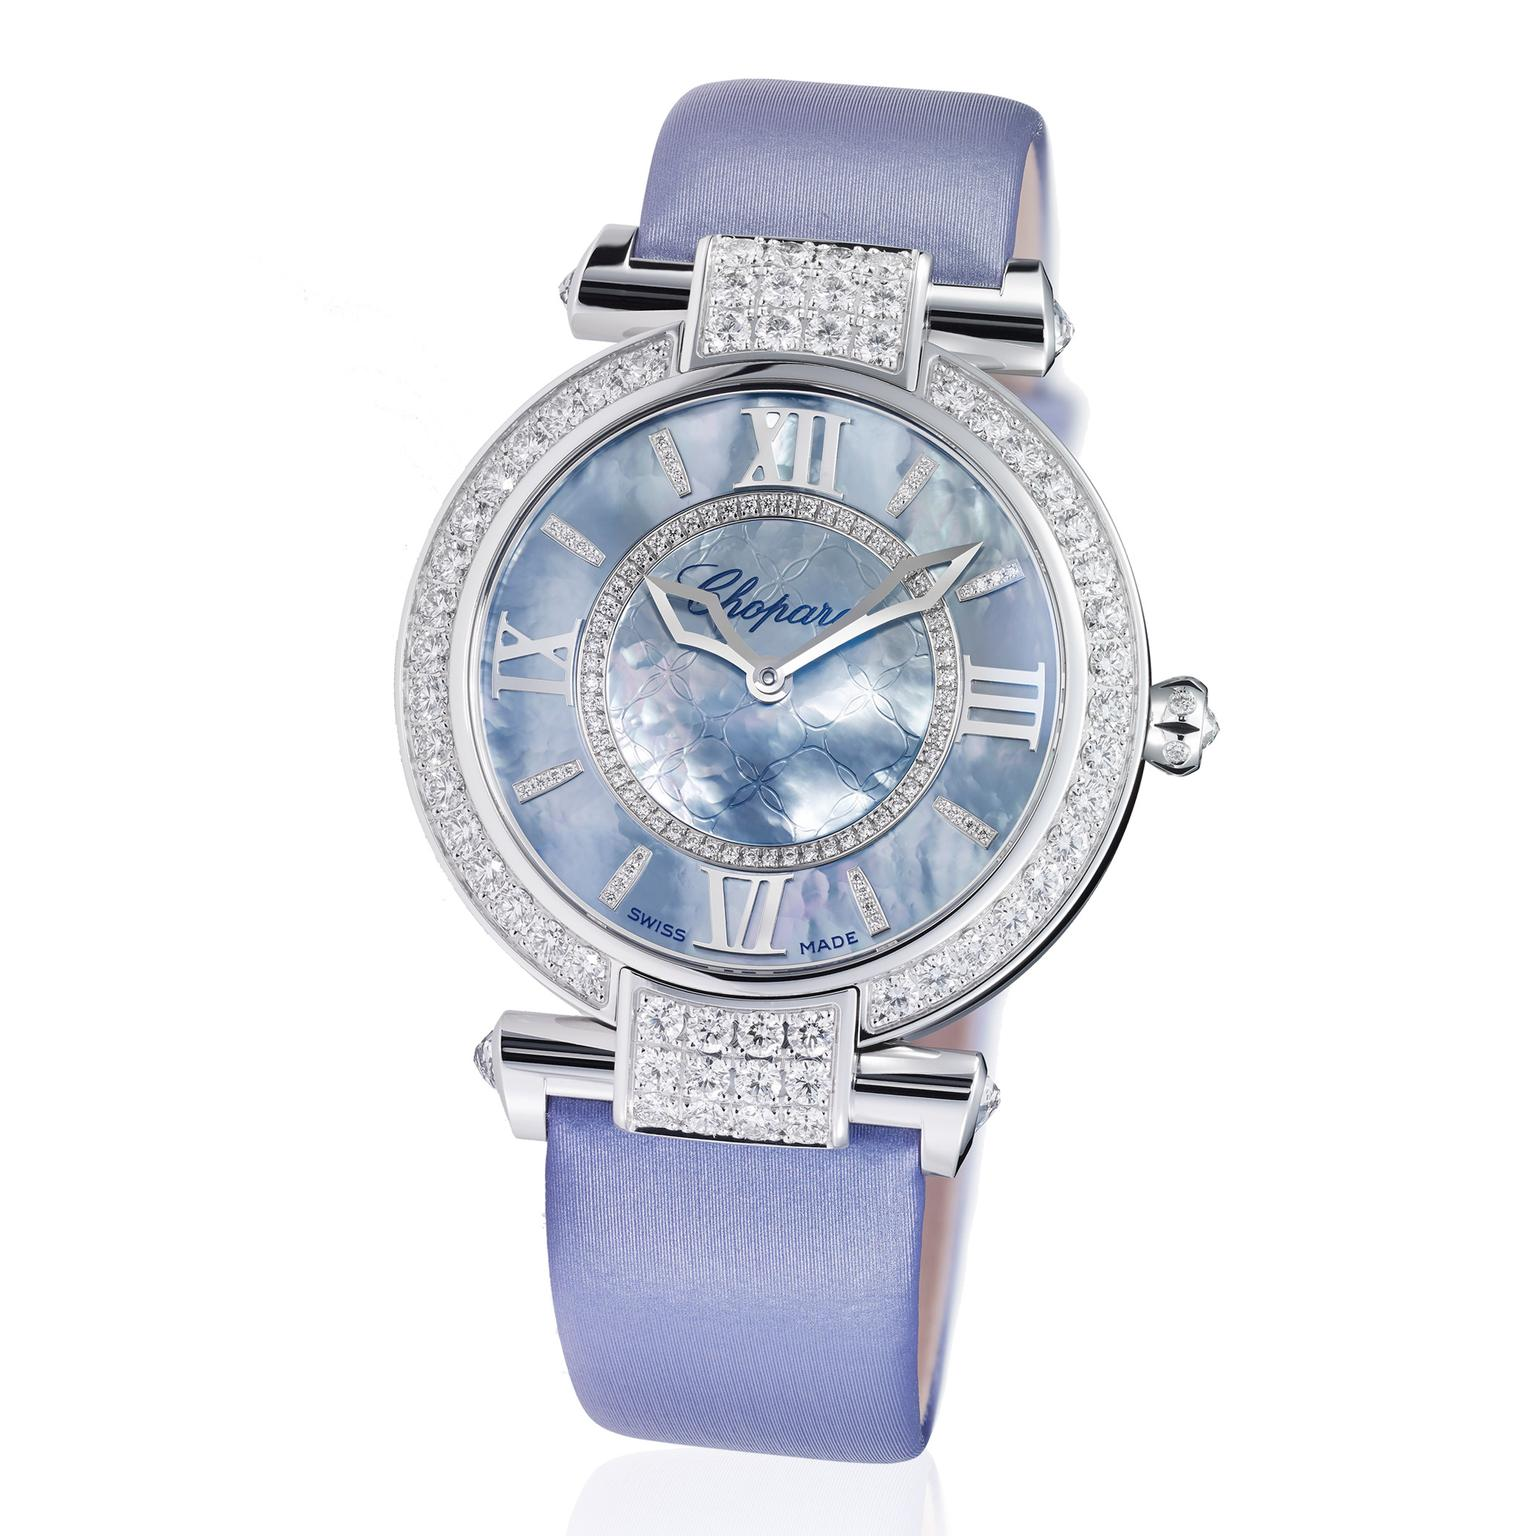 Chopard-Imperiale-Blue-Watch-Zoom